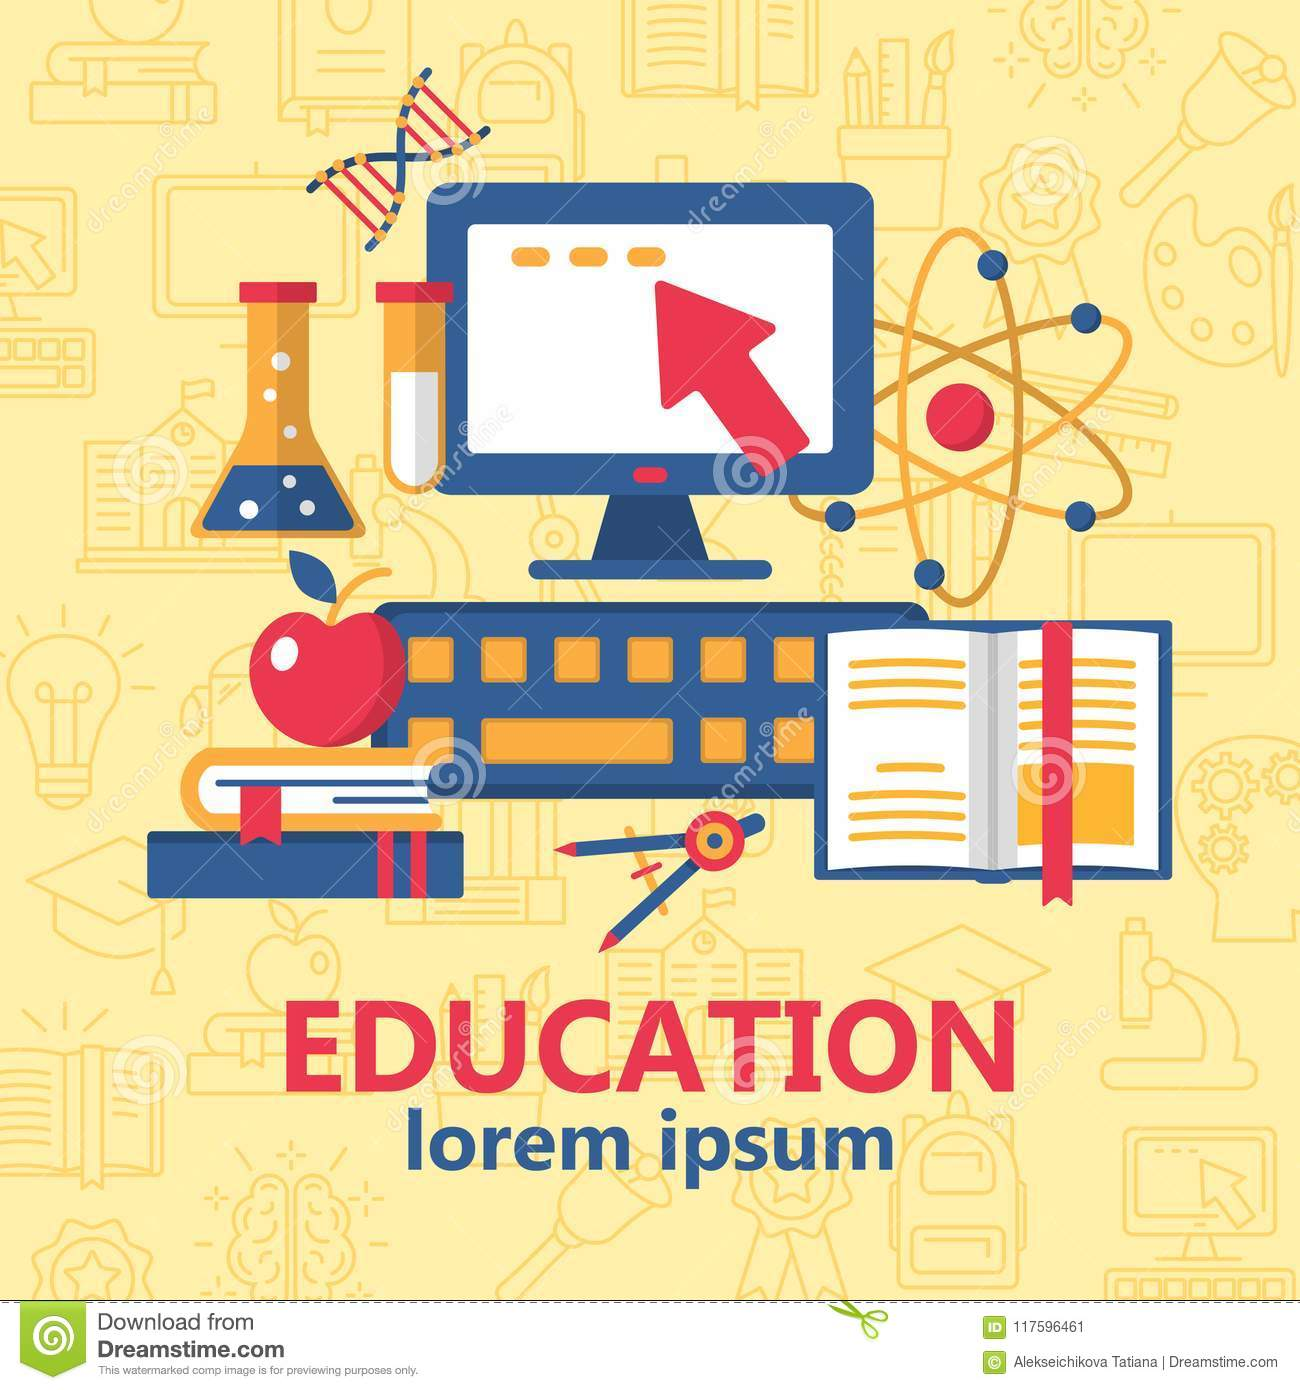 Education poster with various school supplies